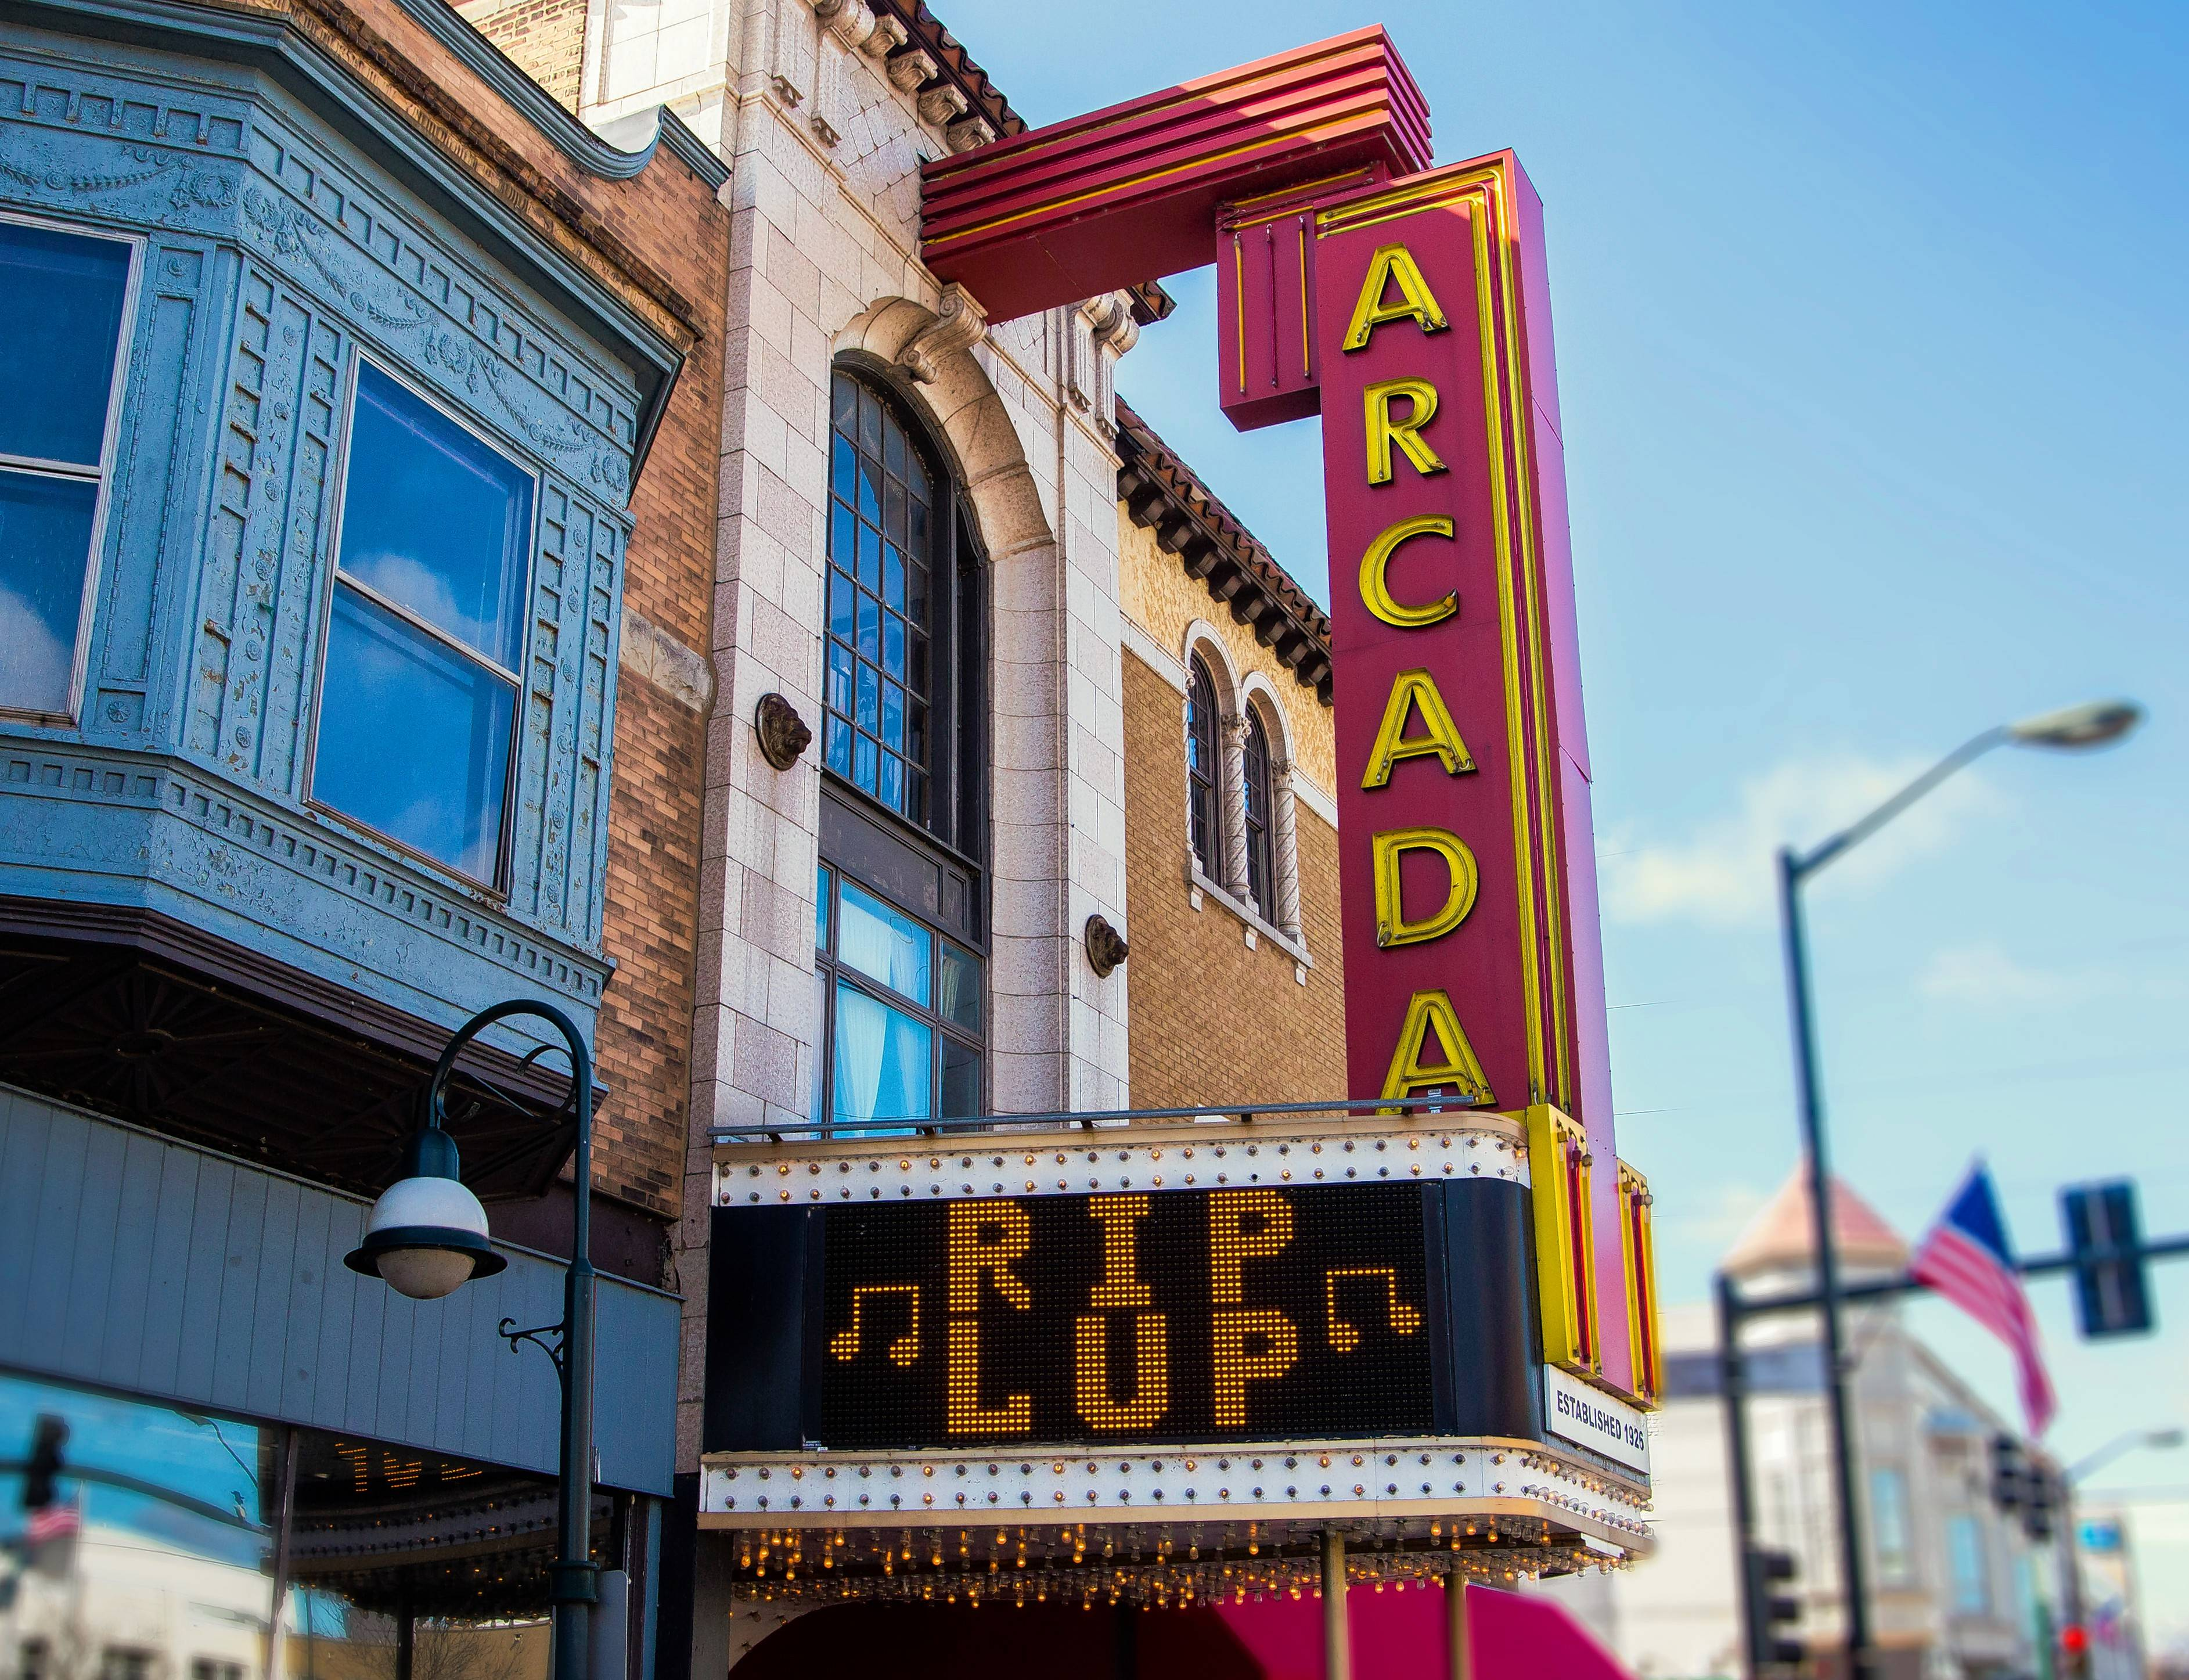 The marquee outside Ron Onesti's Arcada Theatre in St. Charles this week bids farewell to LUP — radio station WLUP 97.9-FM, The Loop, which is changing formats from classic rock to Christian music.